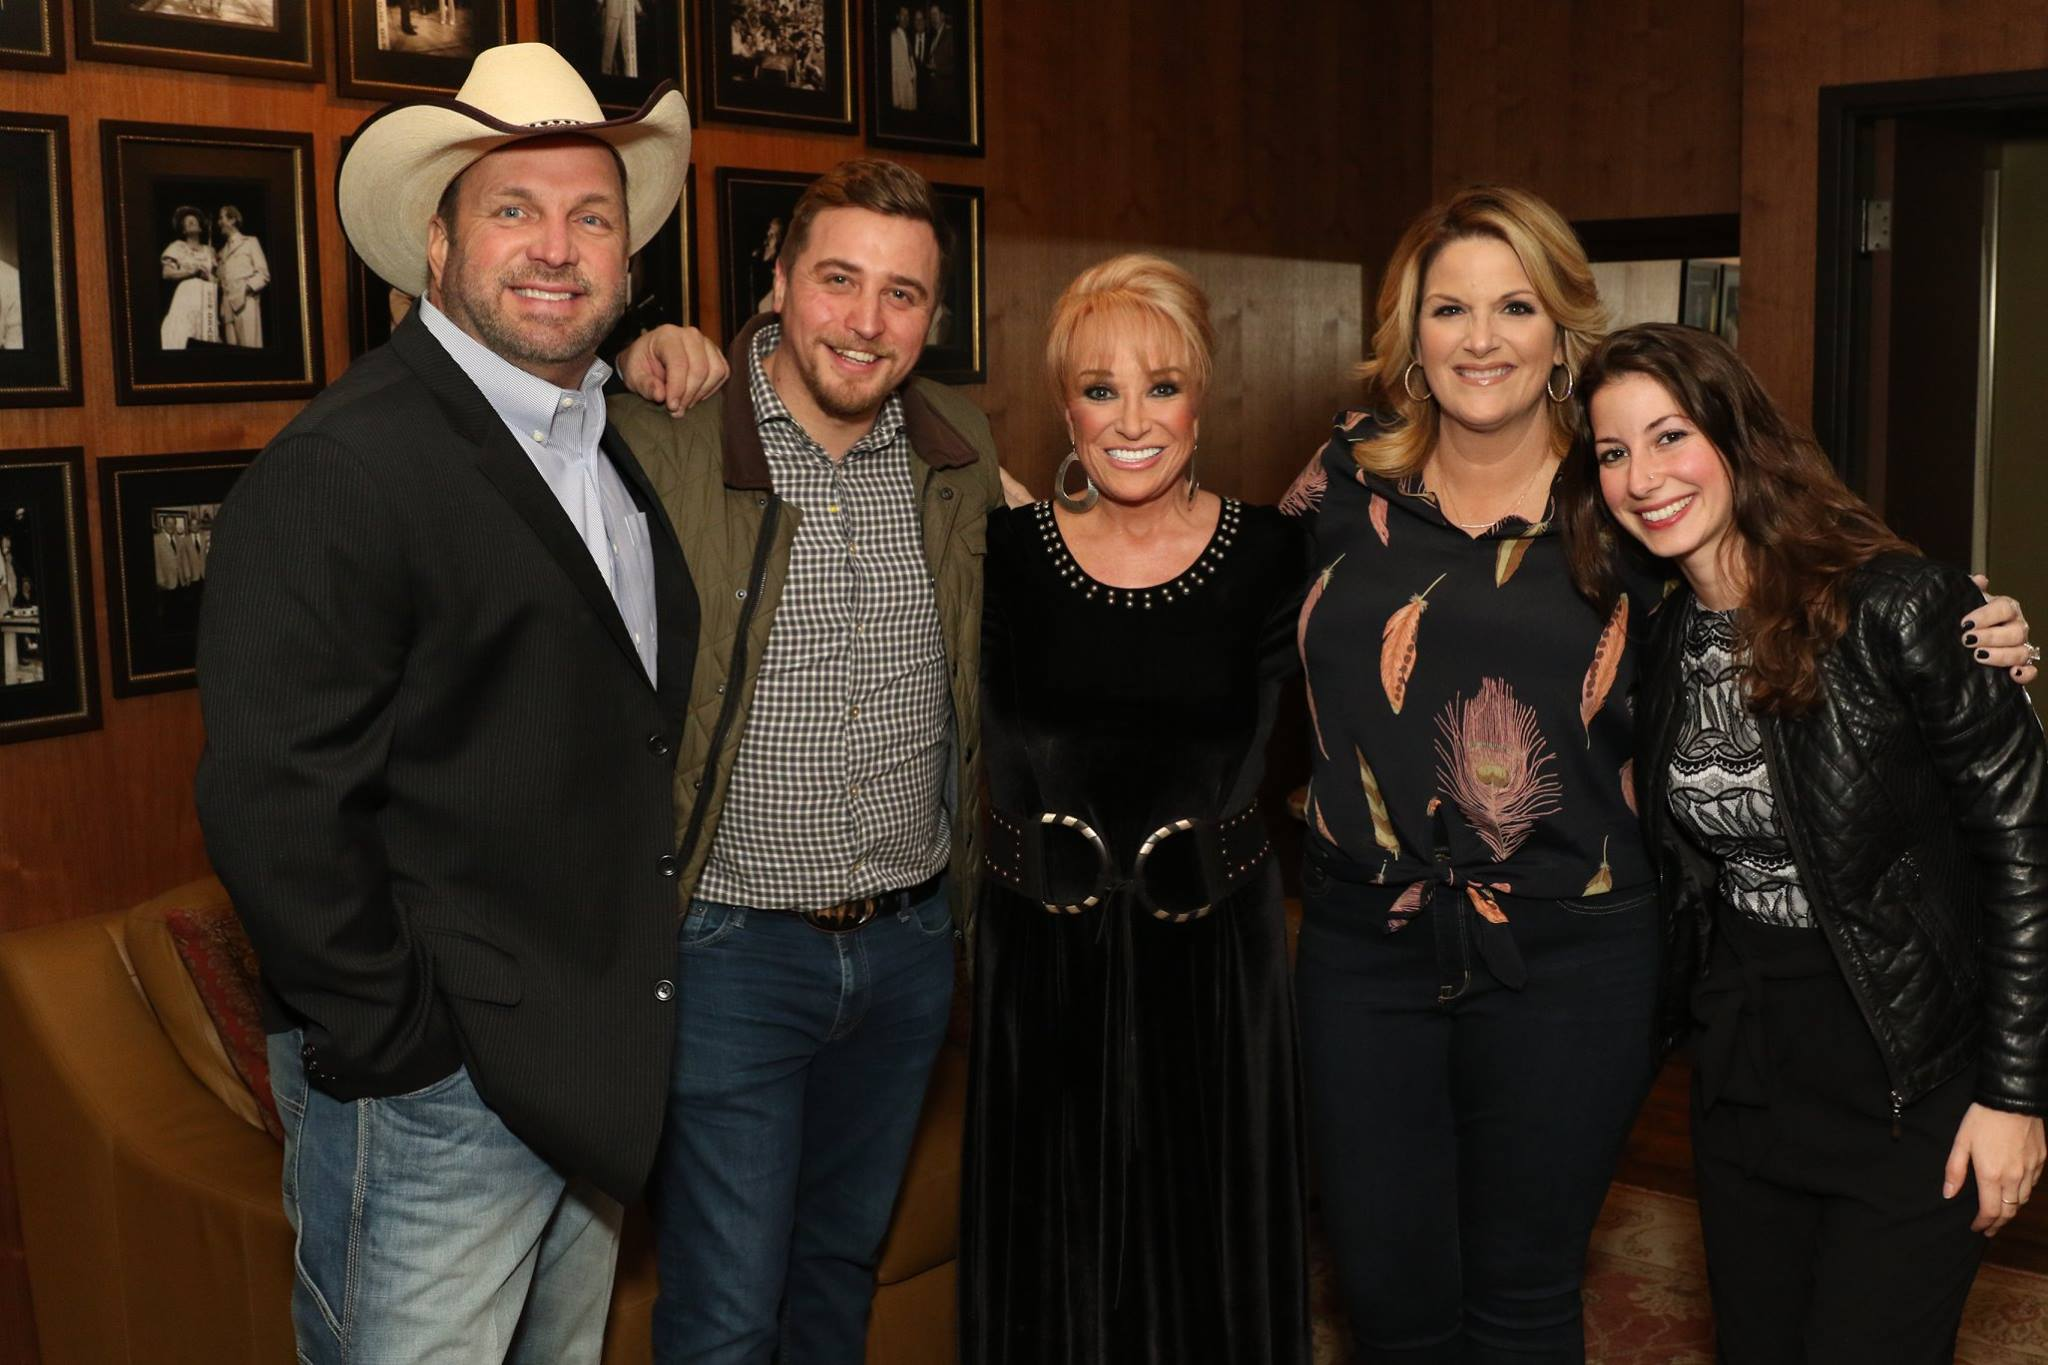 Garth Brooks, James Garner, Tanya Tucker, Trisha Yearwood, Jerilyn Sawyer